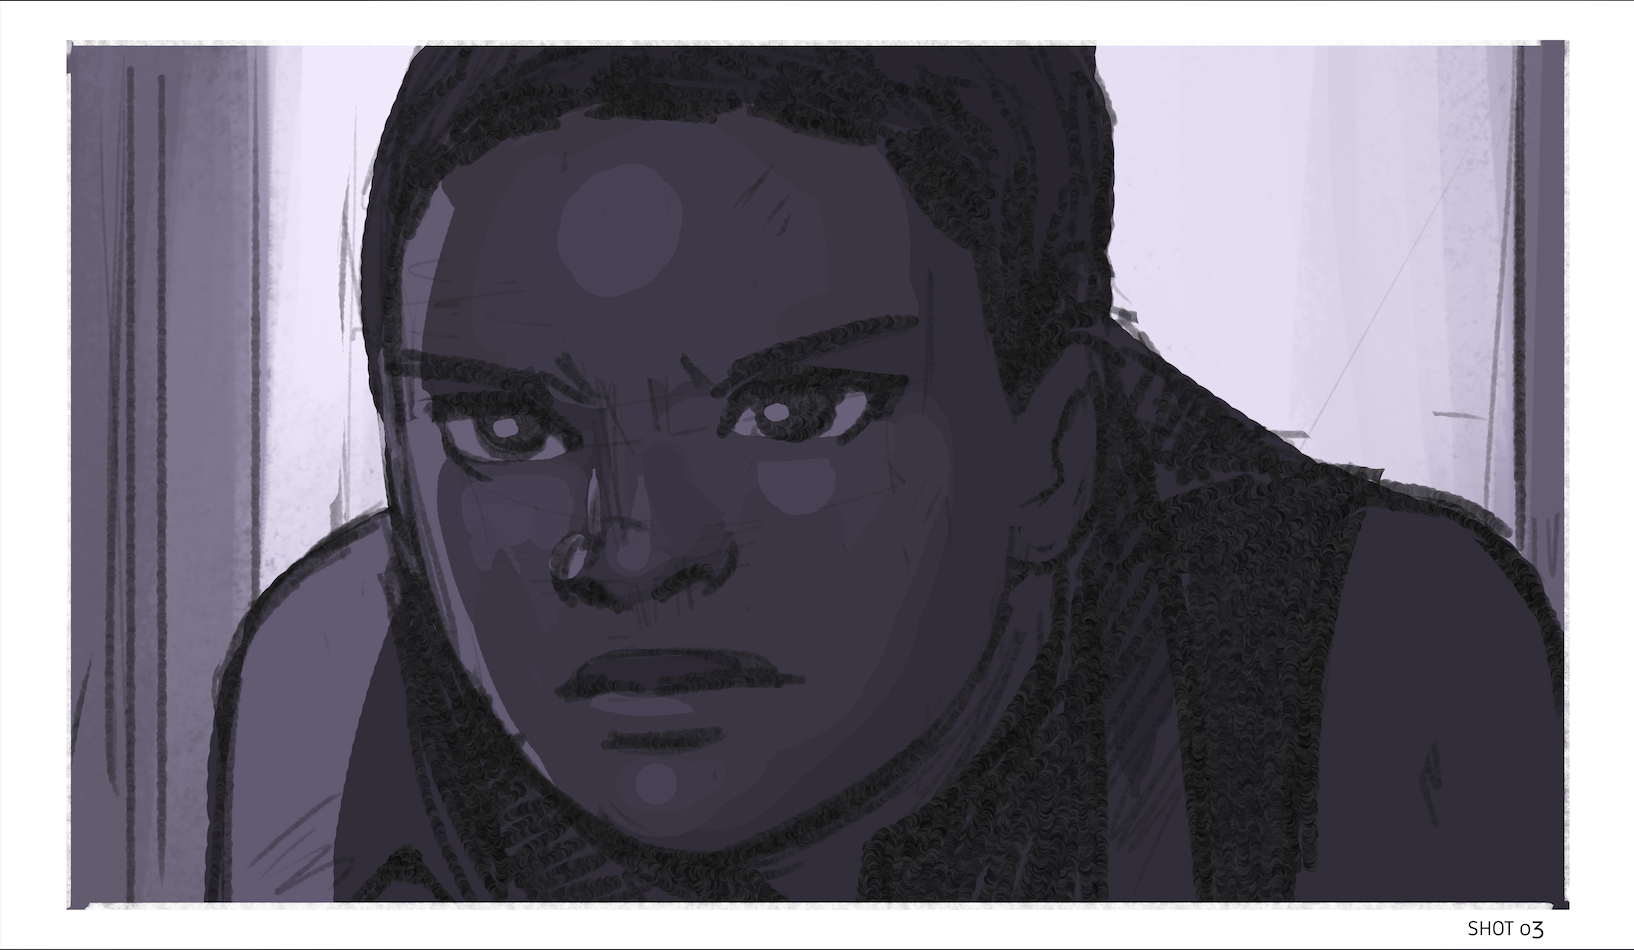 A shot from a storyboard I made.